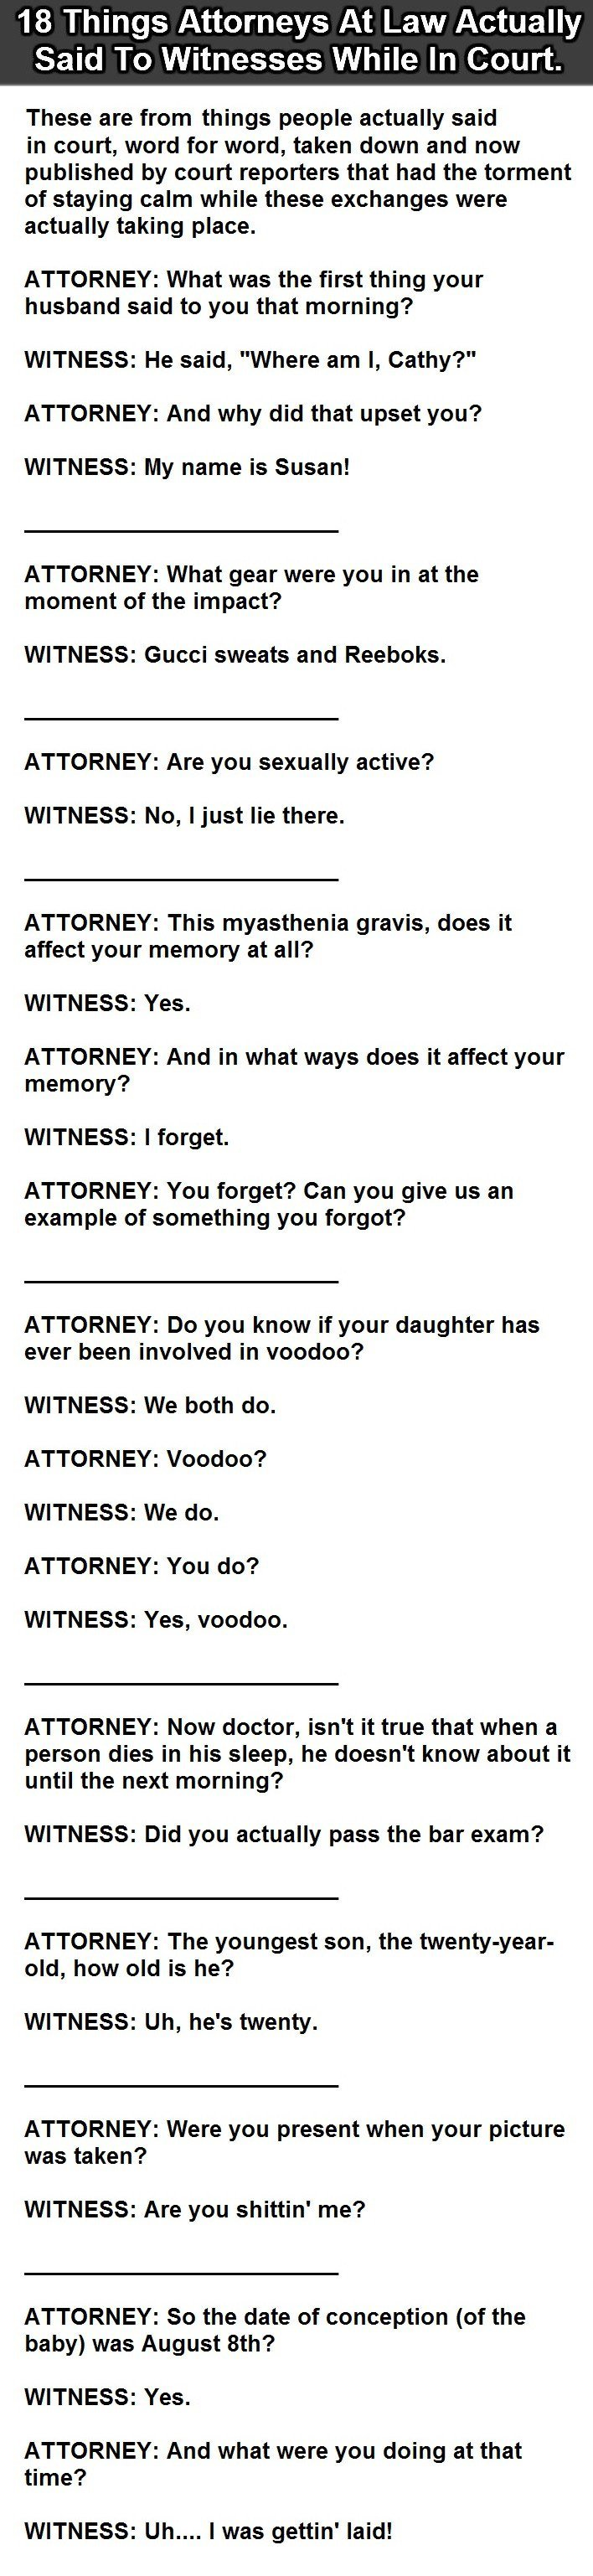 18 Things Actually Said To Witnesses In Court. Is #9 Serious